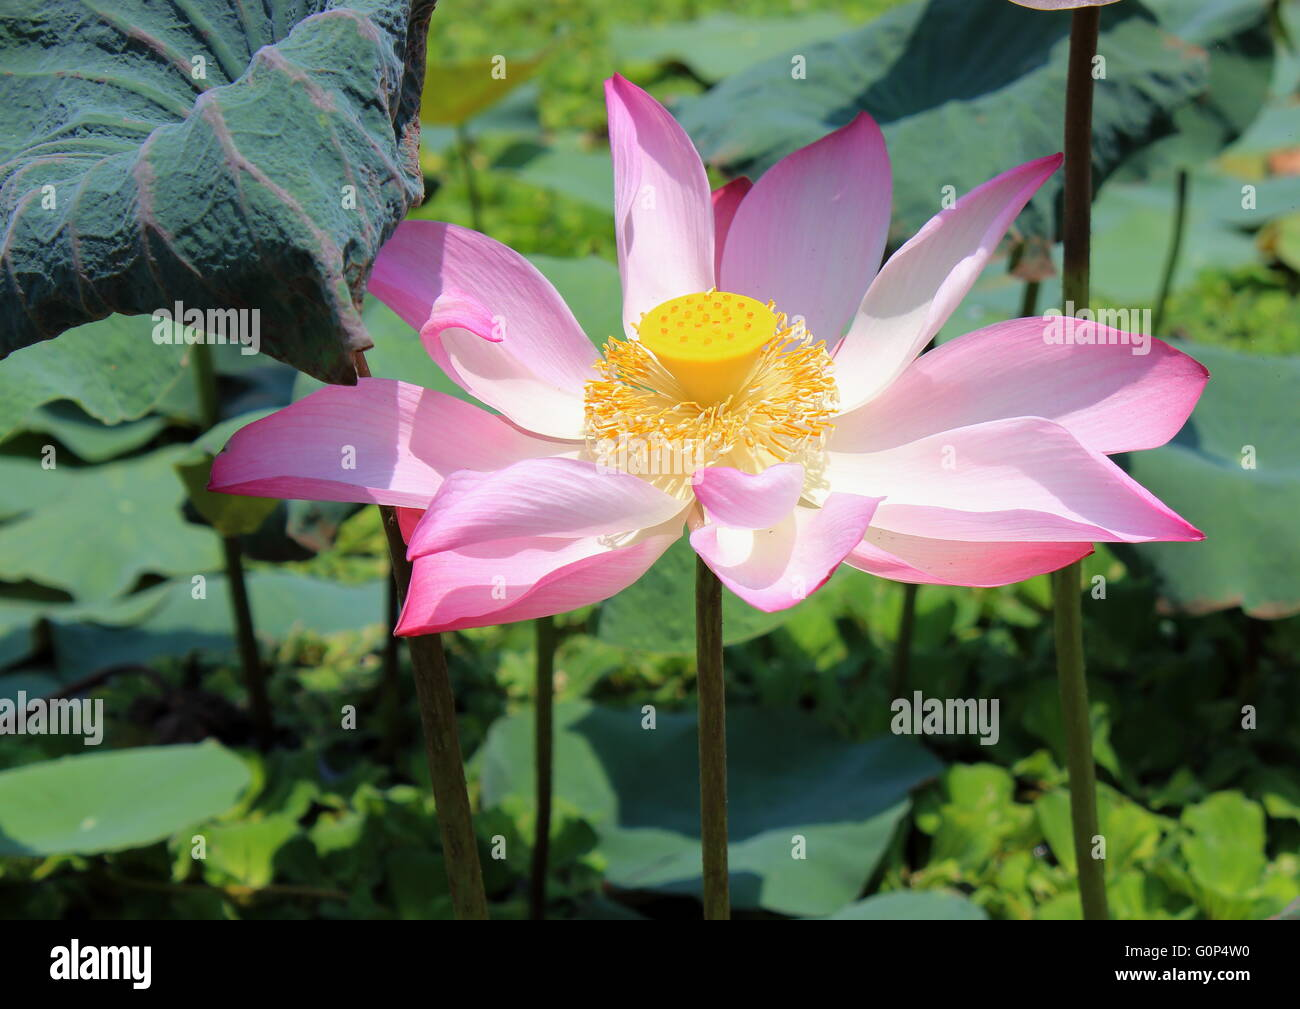 A single pink lotus, nelumbo nucifera, in a pond filled with invasive aquatic plants. Stock Photo